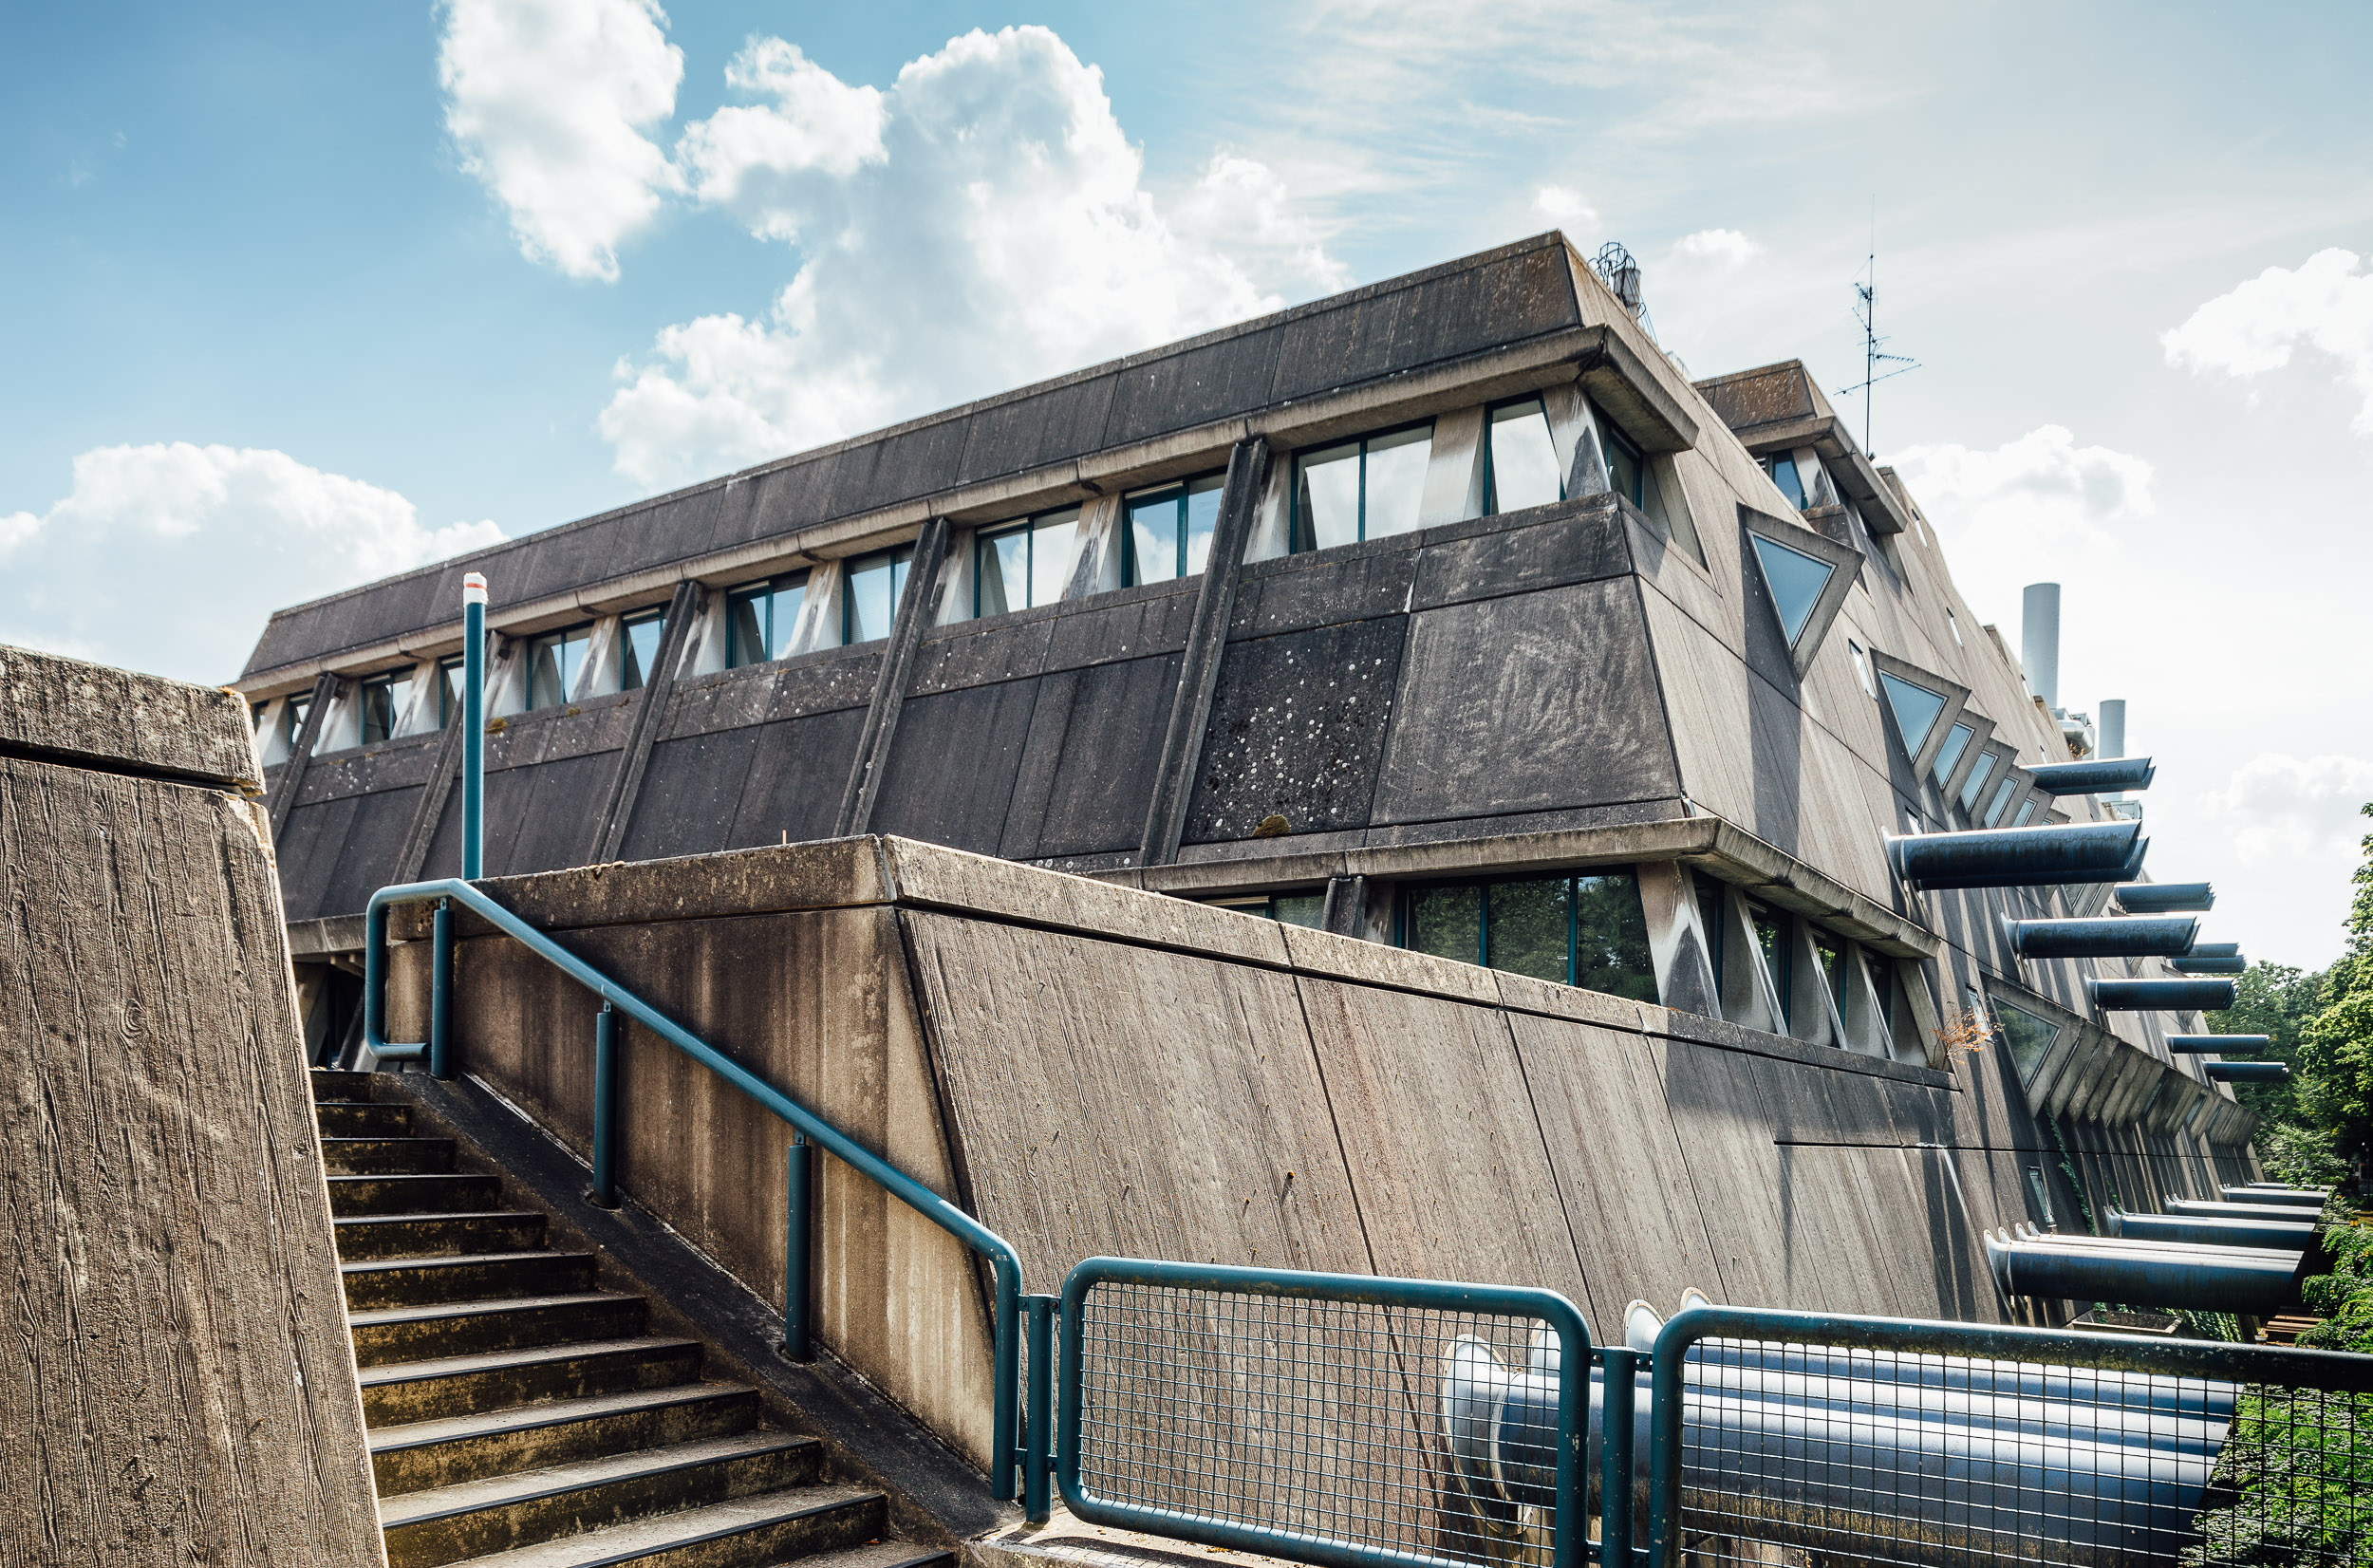 "Gerd Hänska: Central Animal Labs ""Mäusebunker"", Freie Universität Berlin, Germany, 1971–1980. Photo: Felix Torkar"